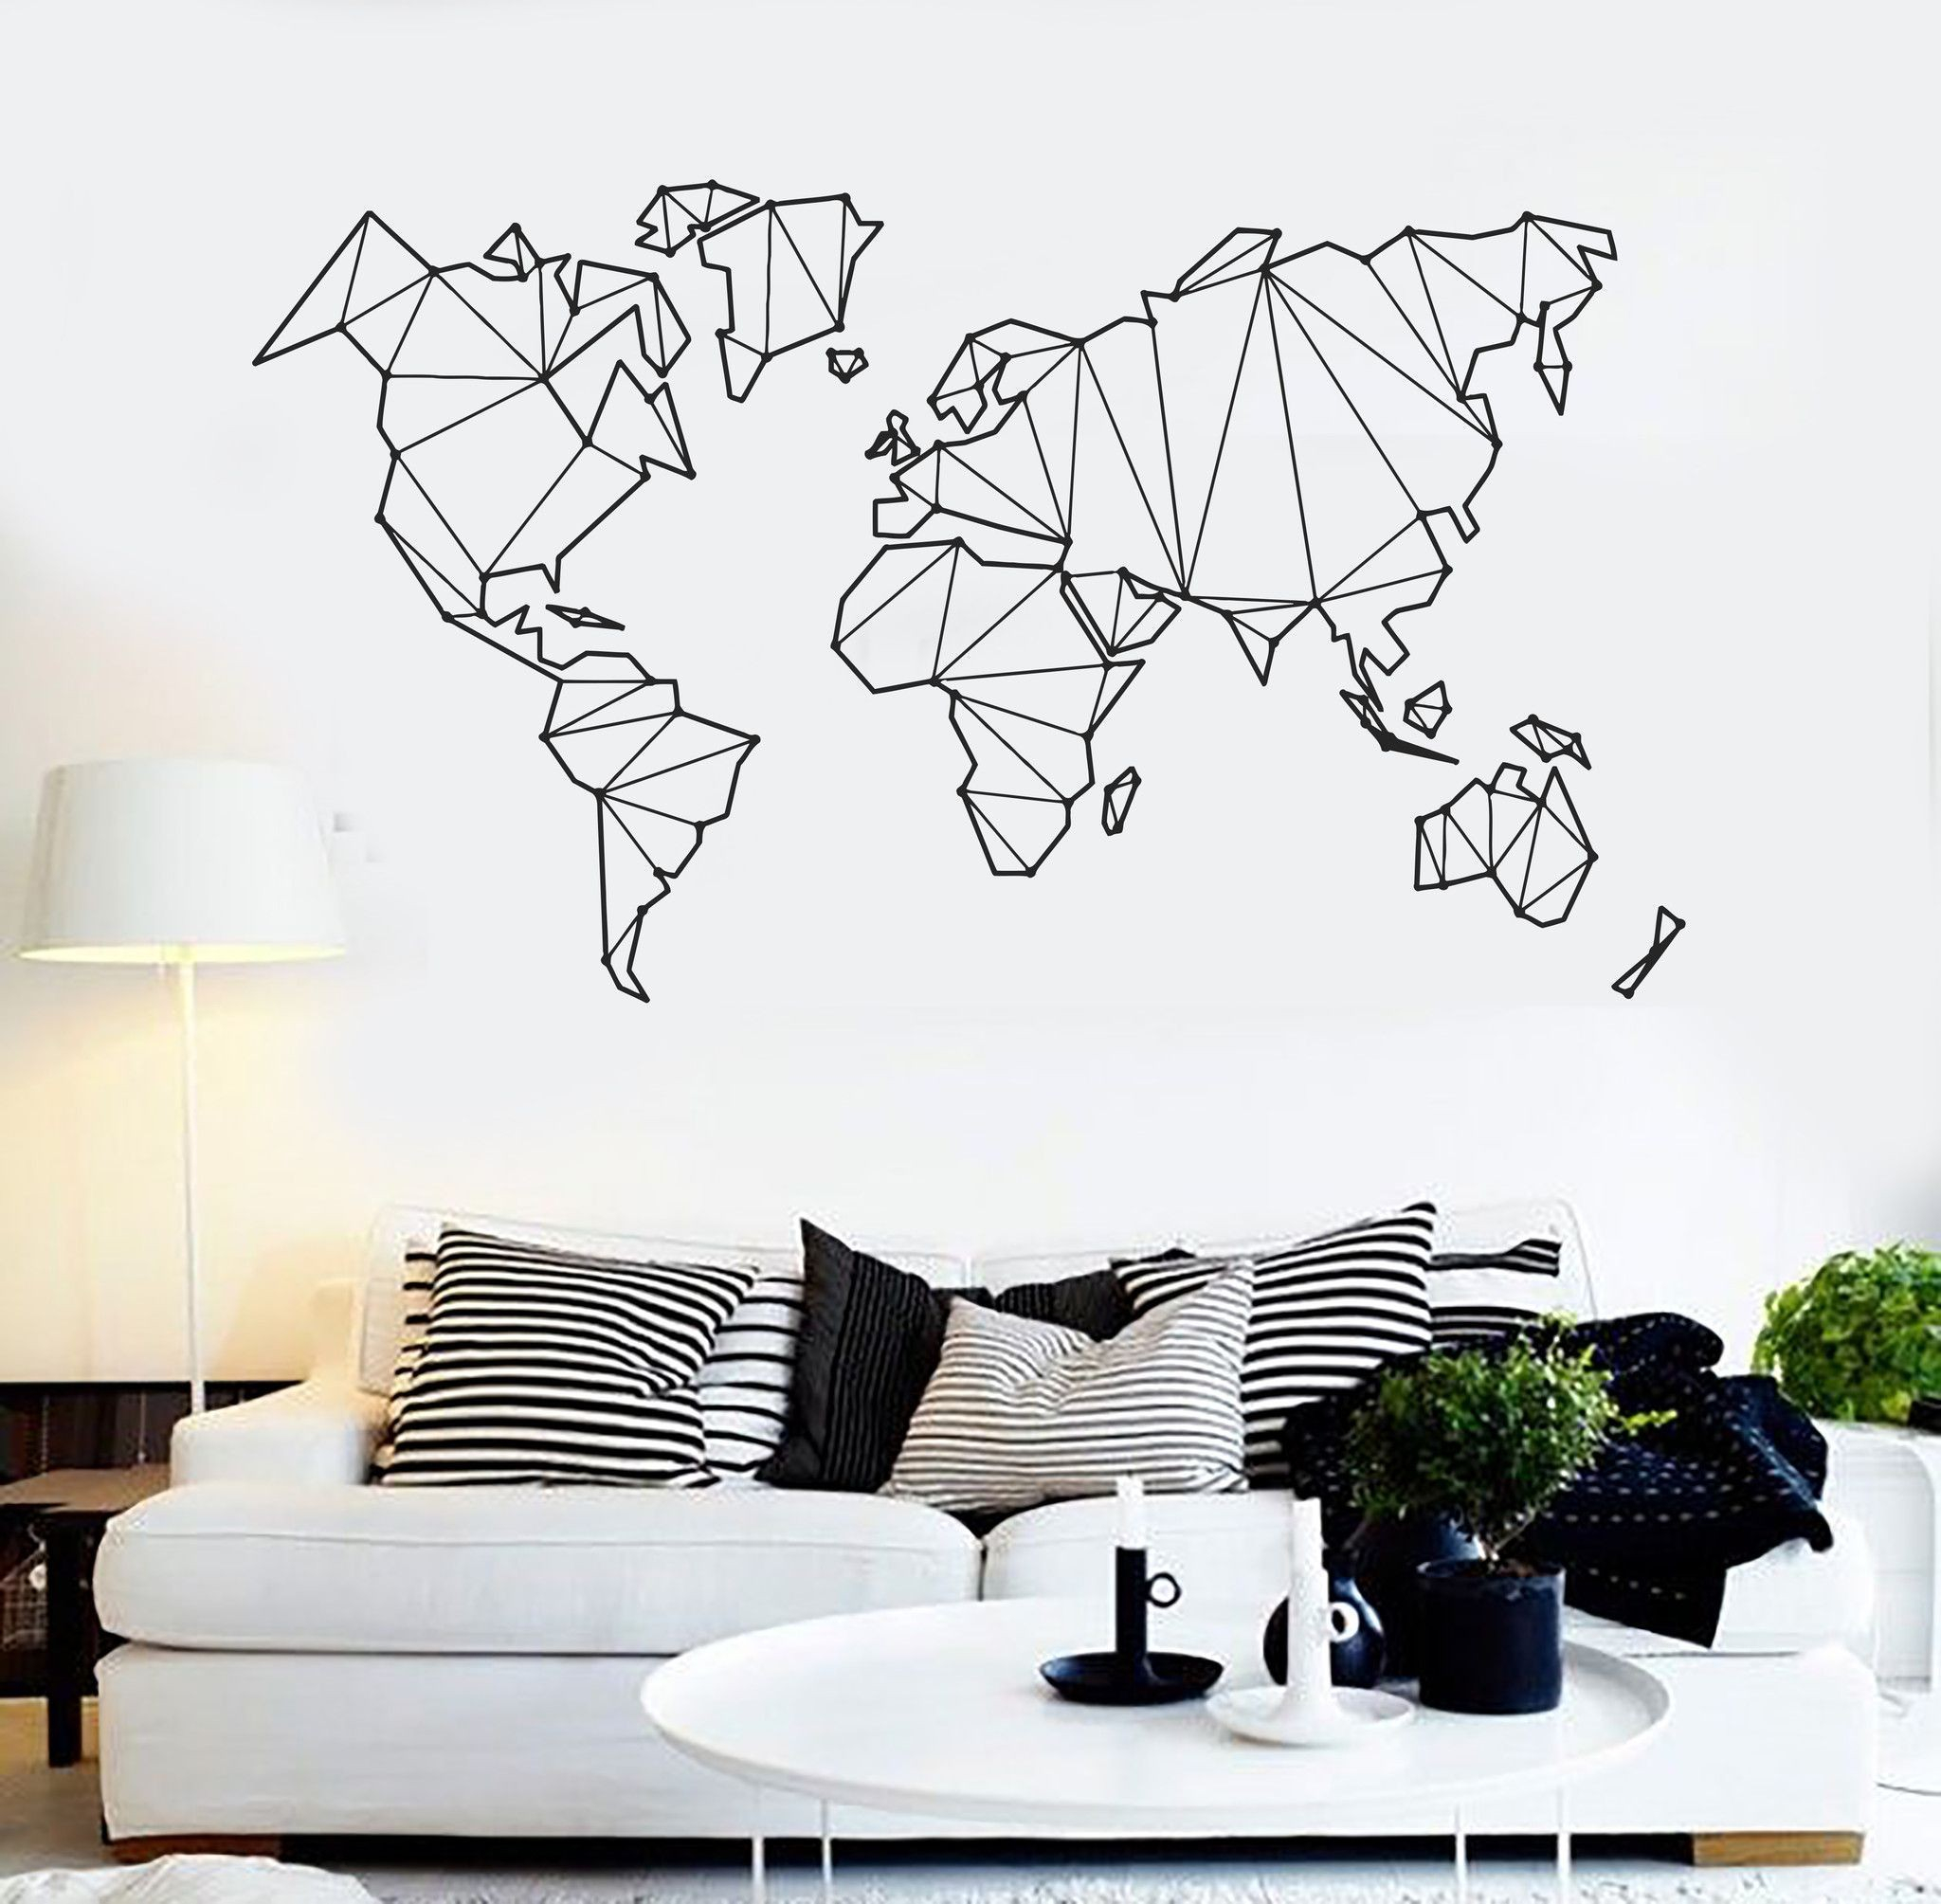 Amazing Living Room : 27 Modern Living Room Decals Astonishing Vinyl Wall in Living Room Decals